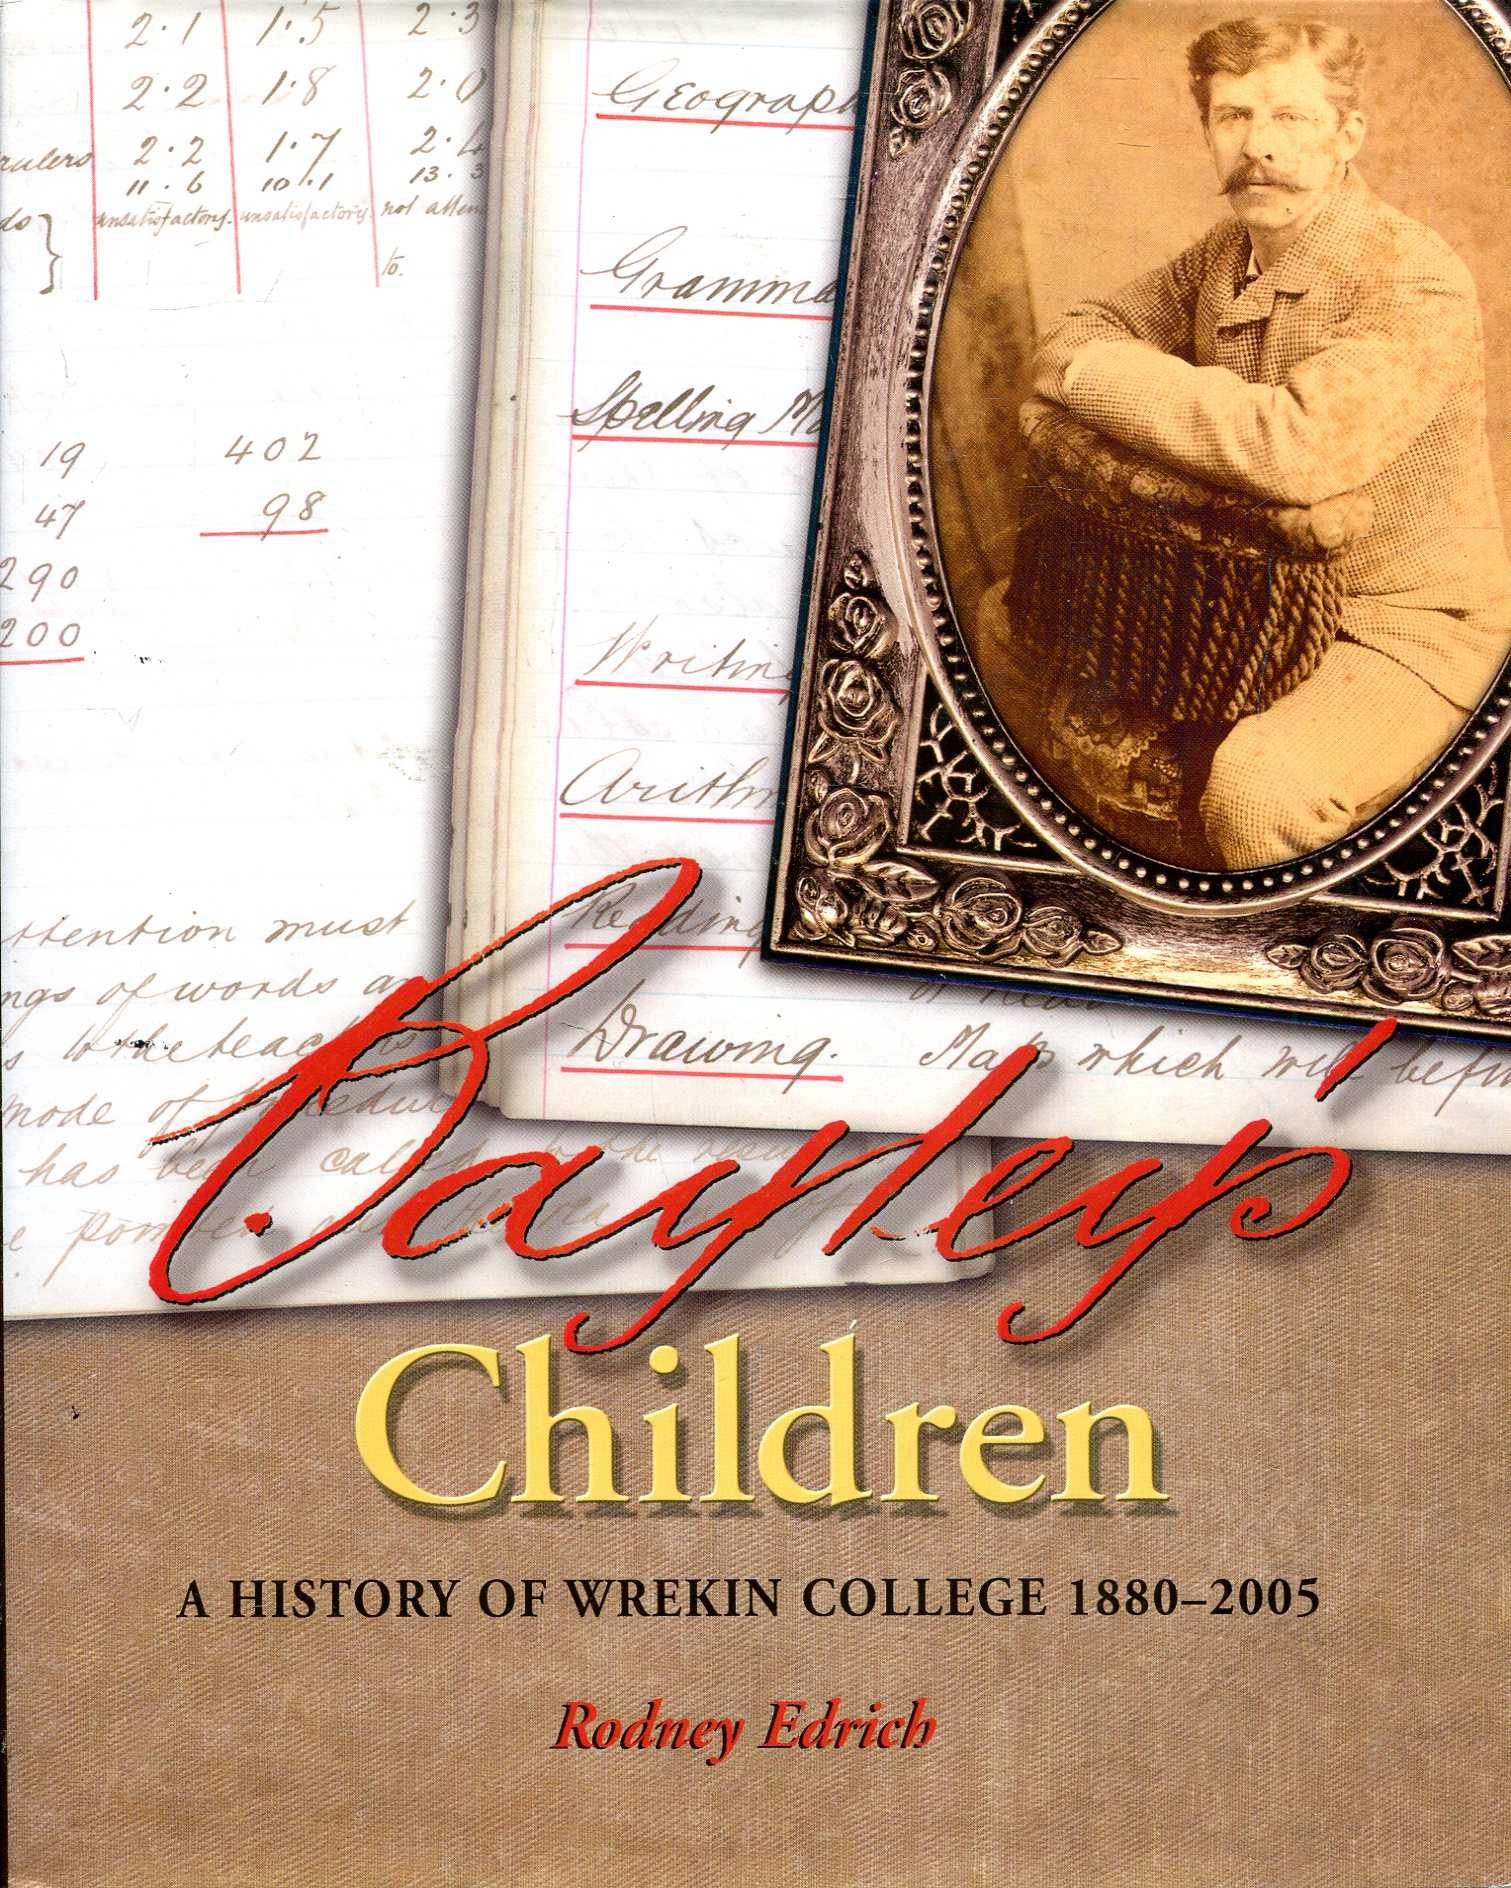 Image for Bayley's Children: A History of Wrekin College 1880-2005